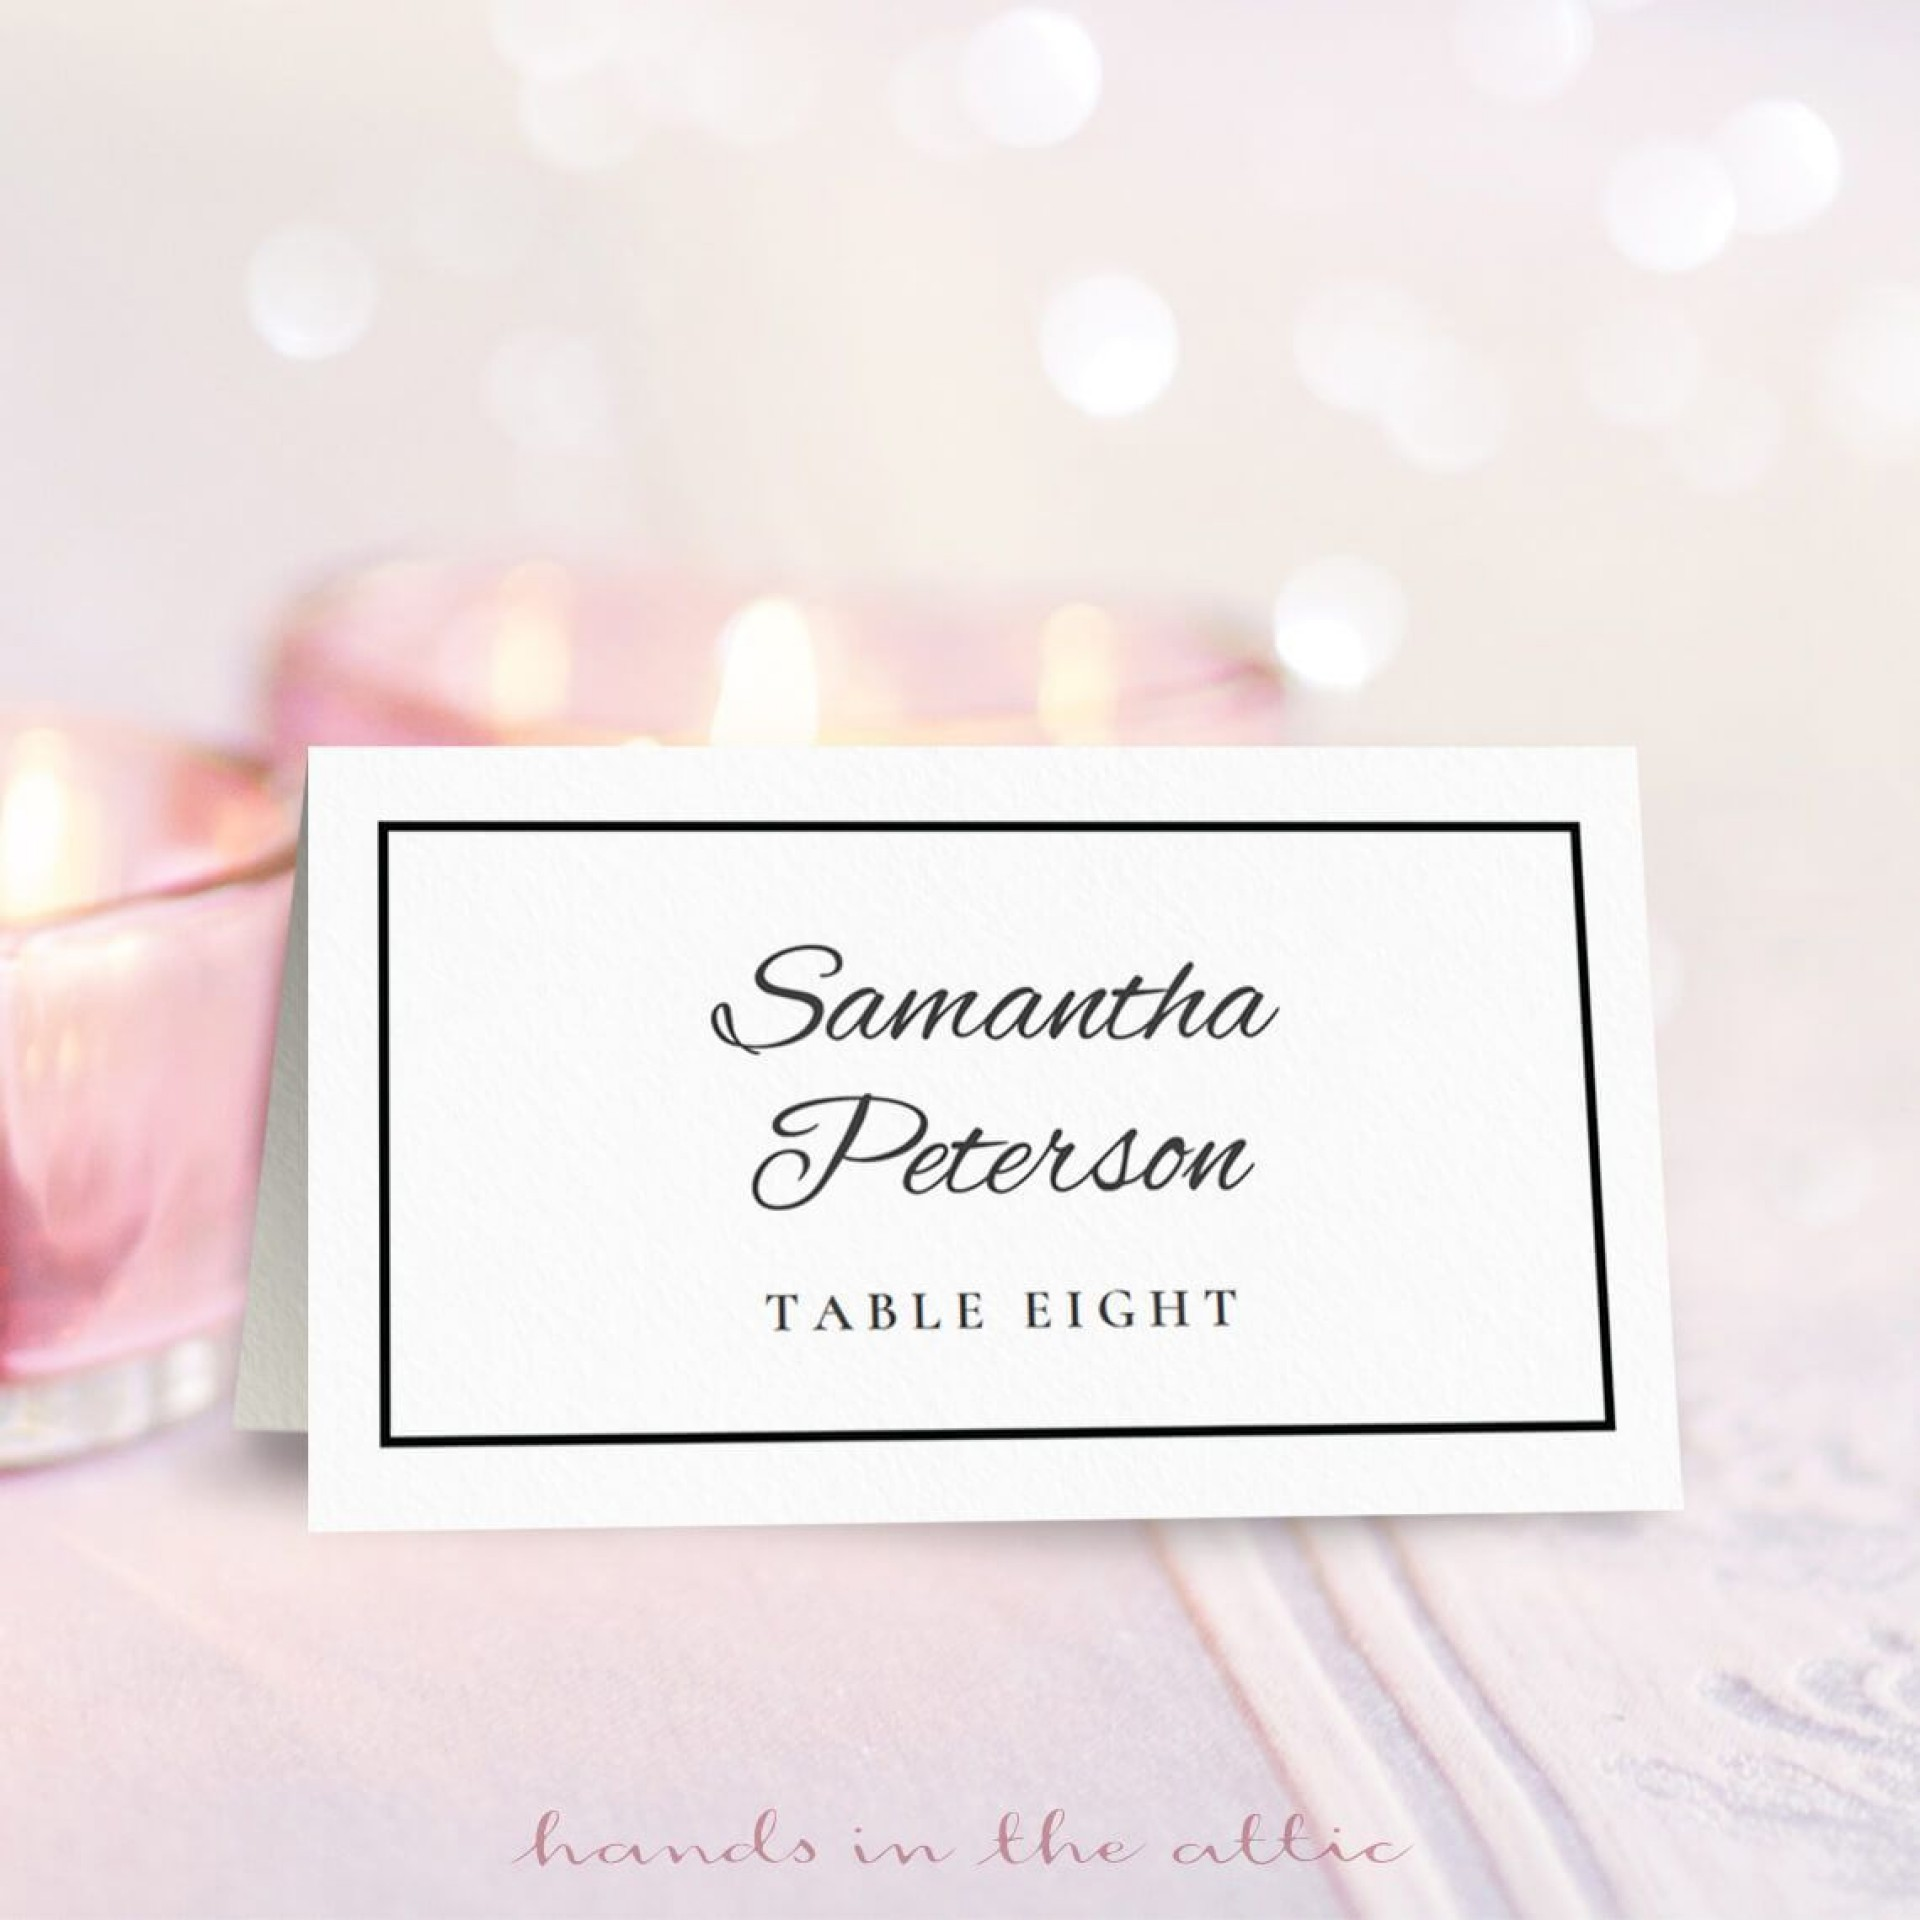 009 Rare Free Printable Place Card Template Image  Blank Wedding Christma Table1920